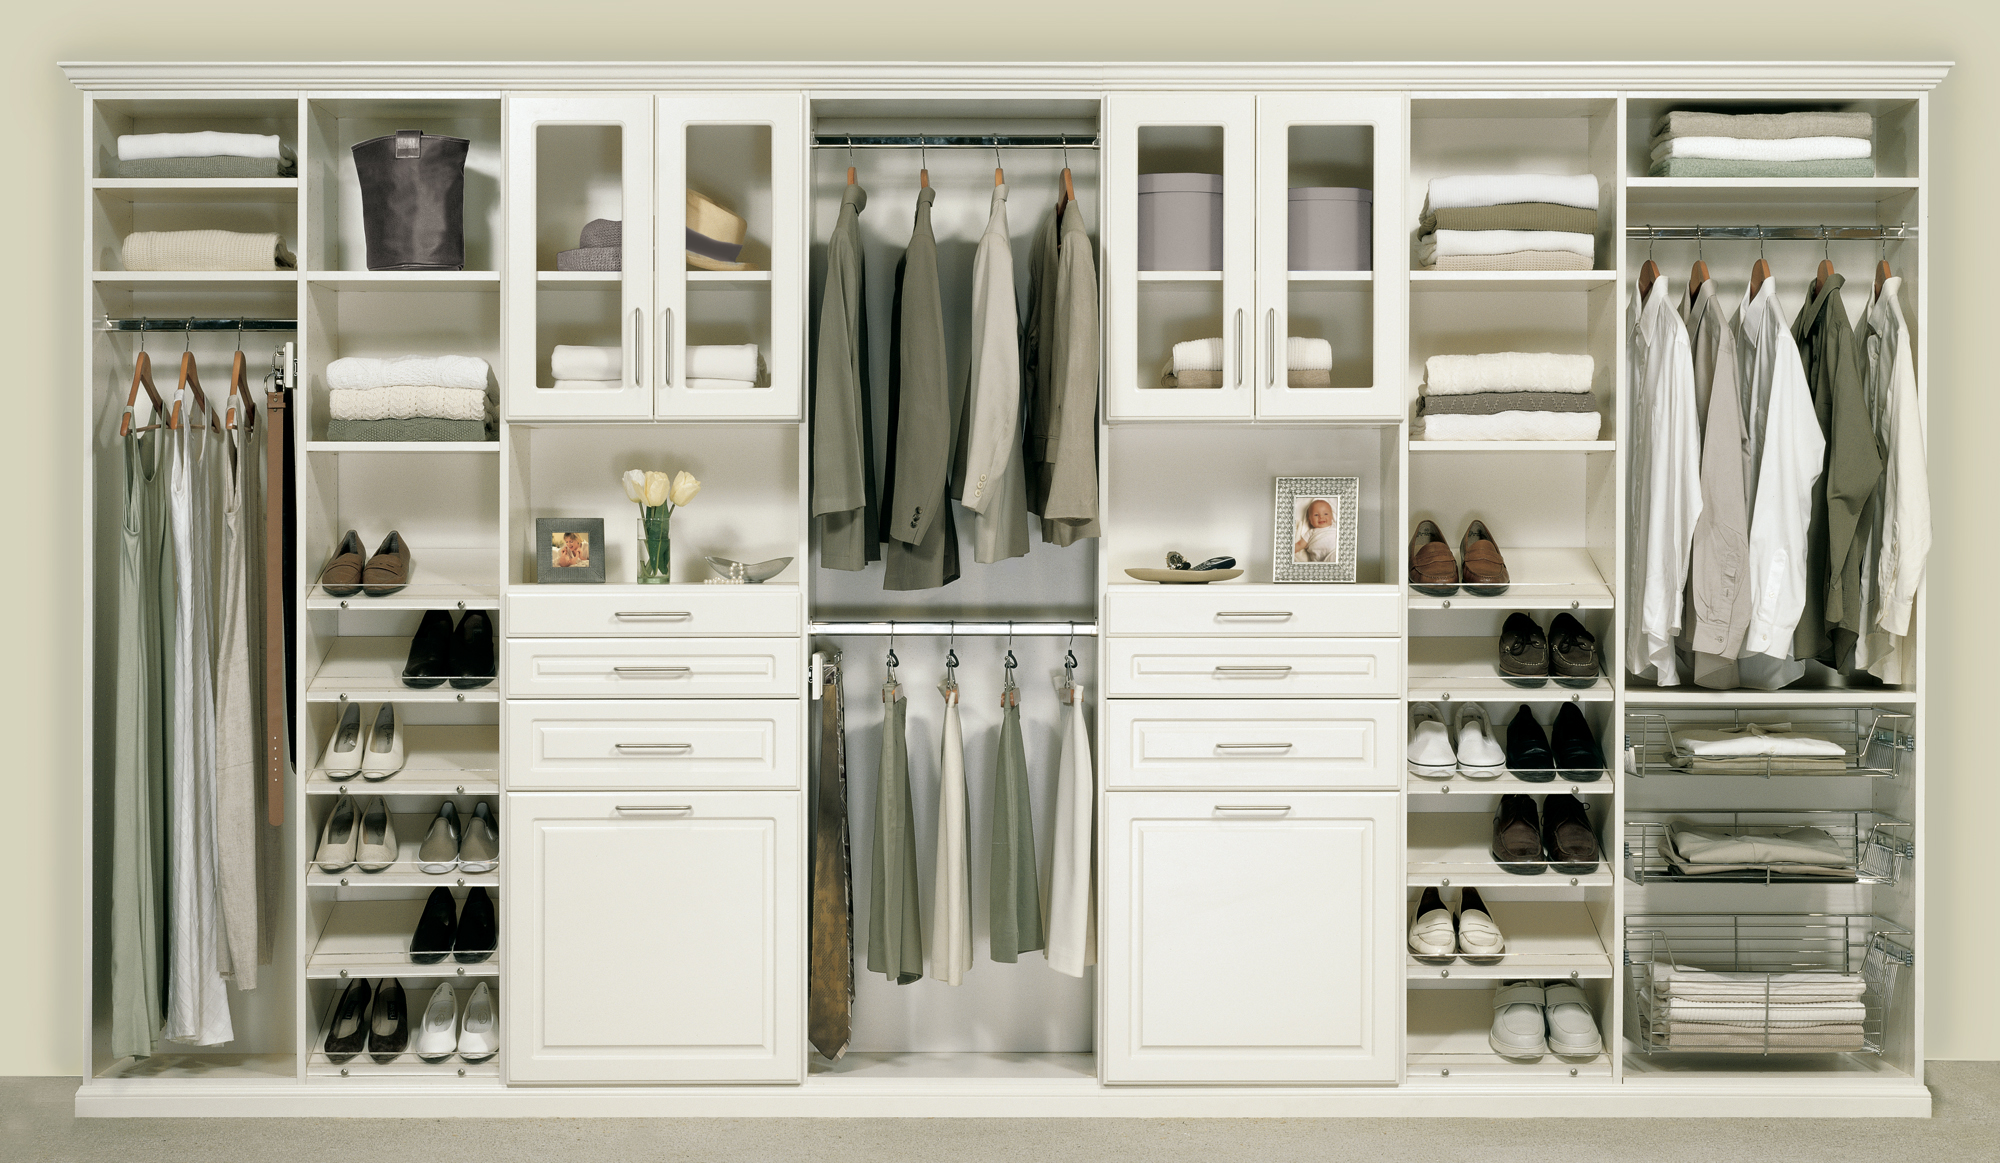 system the closets algot and ideas walking lowes depot best pinterest desk in planner room stolmen cabinets hack diy wardrobe home online single middle closet dressing pax ikea organizer on walk custom of dresser images systems design